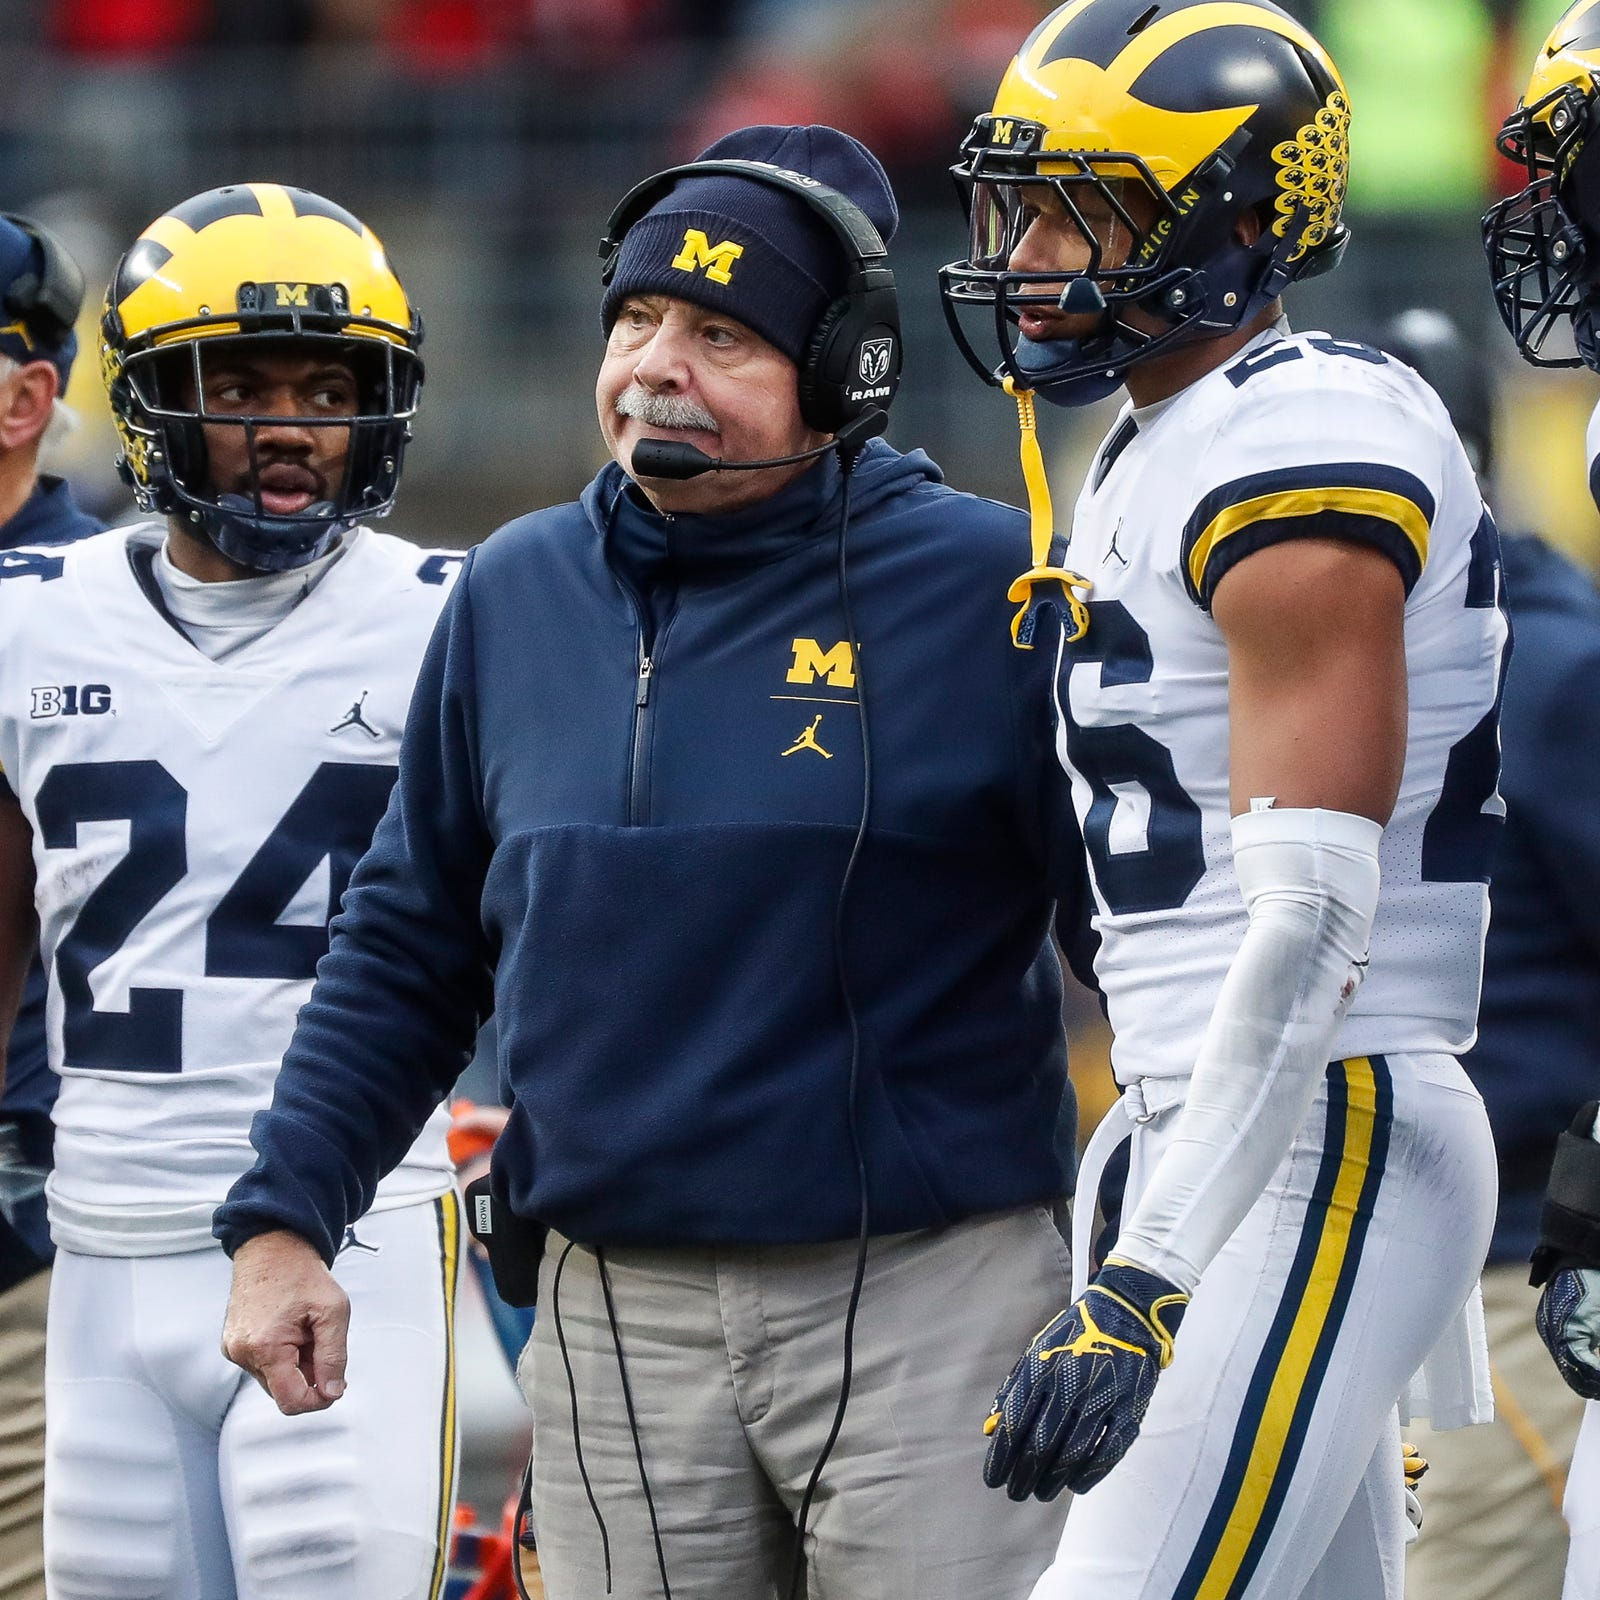 Michigan football: Don Brown's defense faces interesting reset